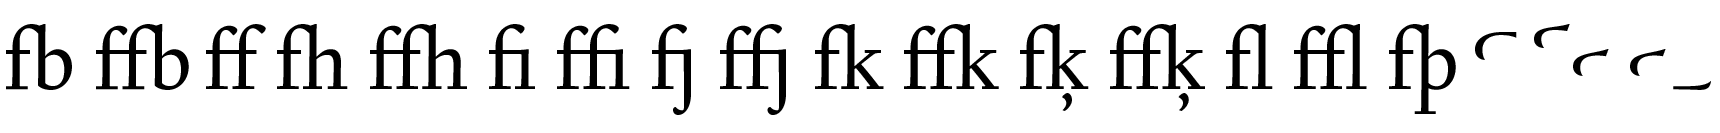 <p>Ligatures & swash elements</p> glyphs